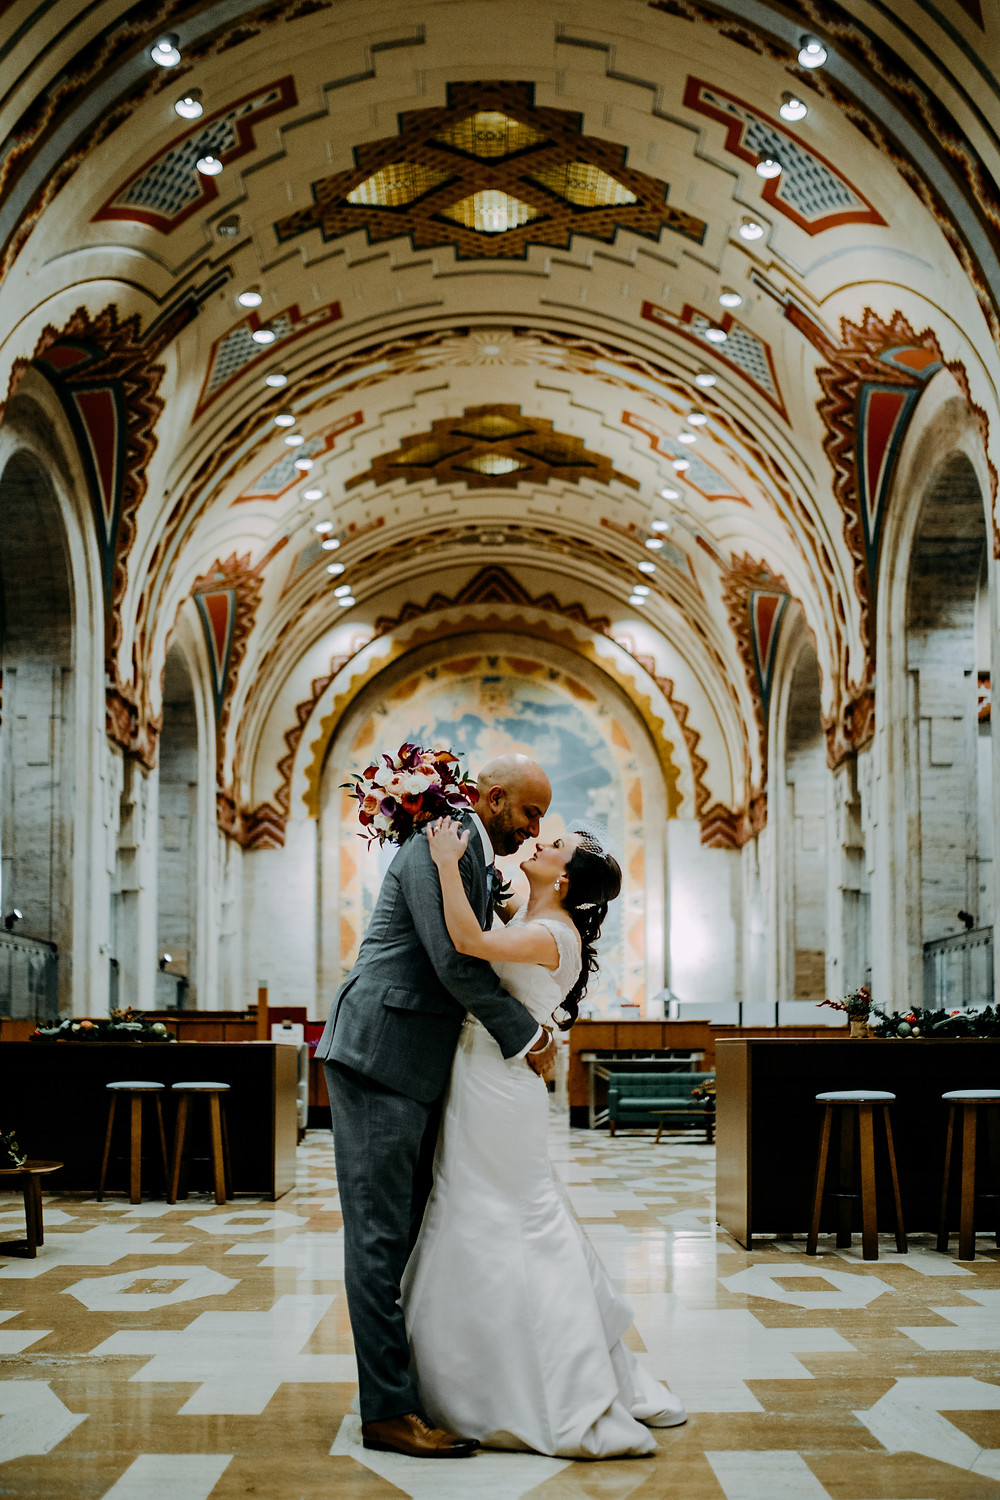 elopement photo at the guardian building in downtown detroit taken by little blue bird photography.